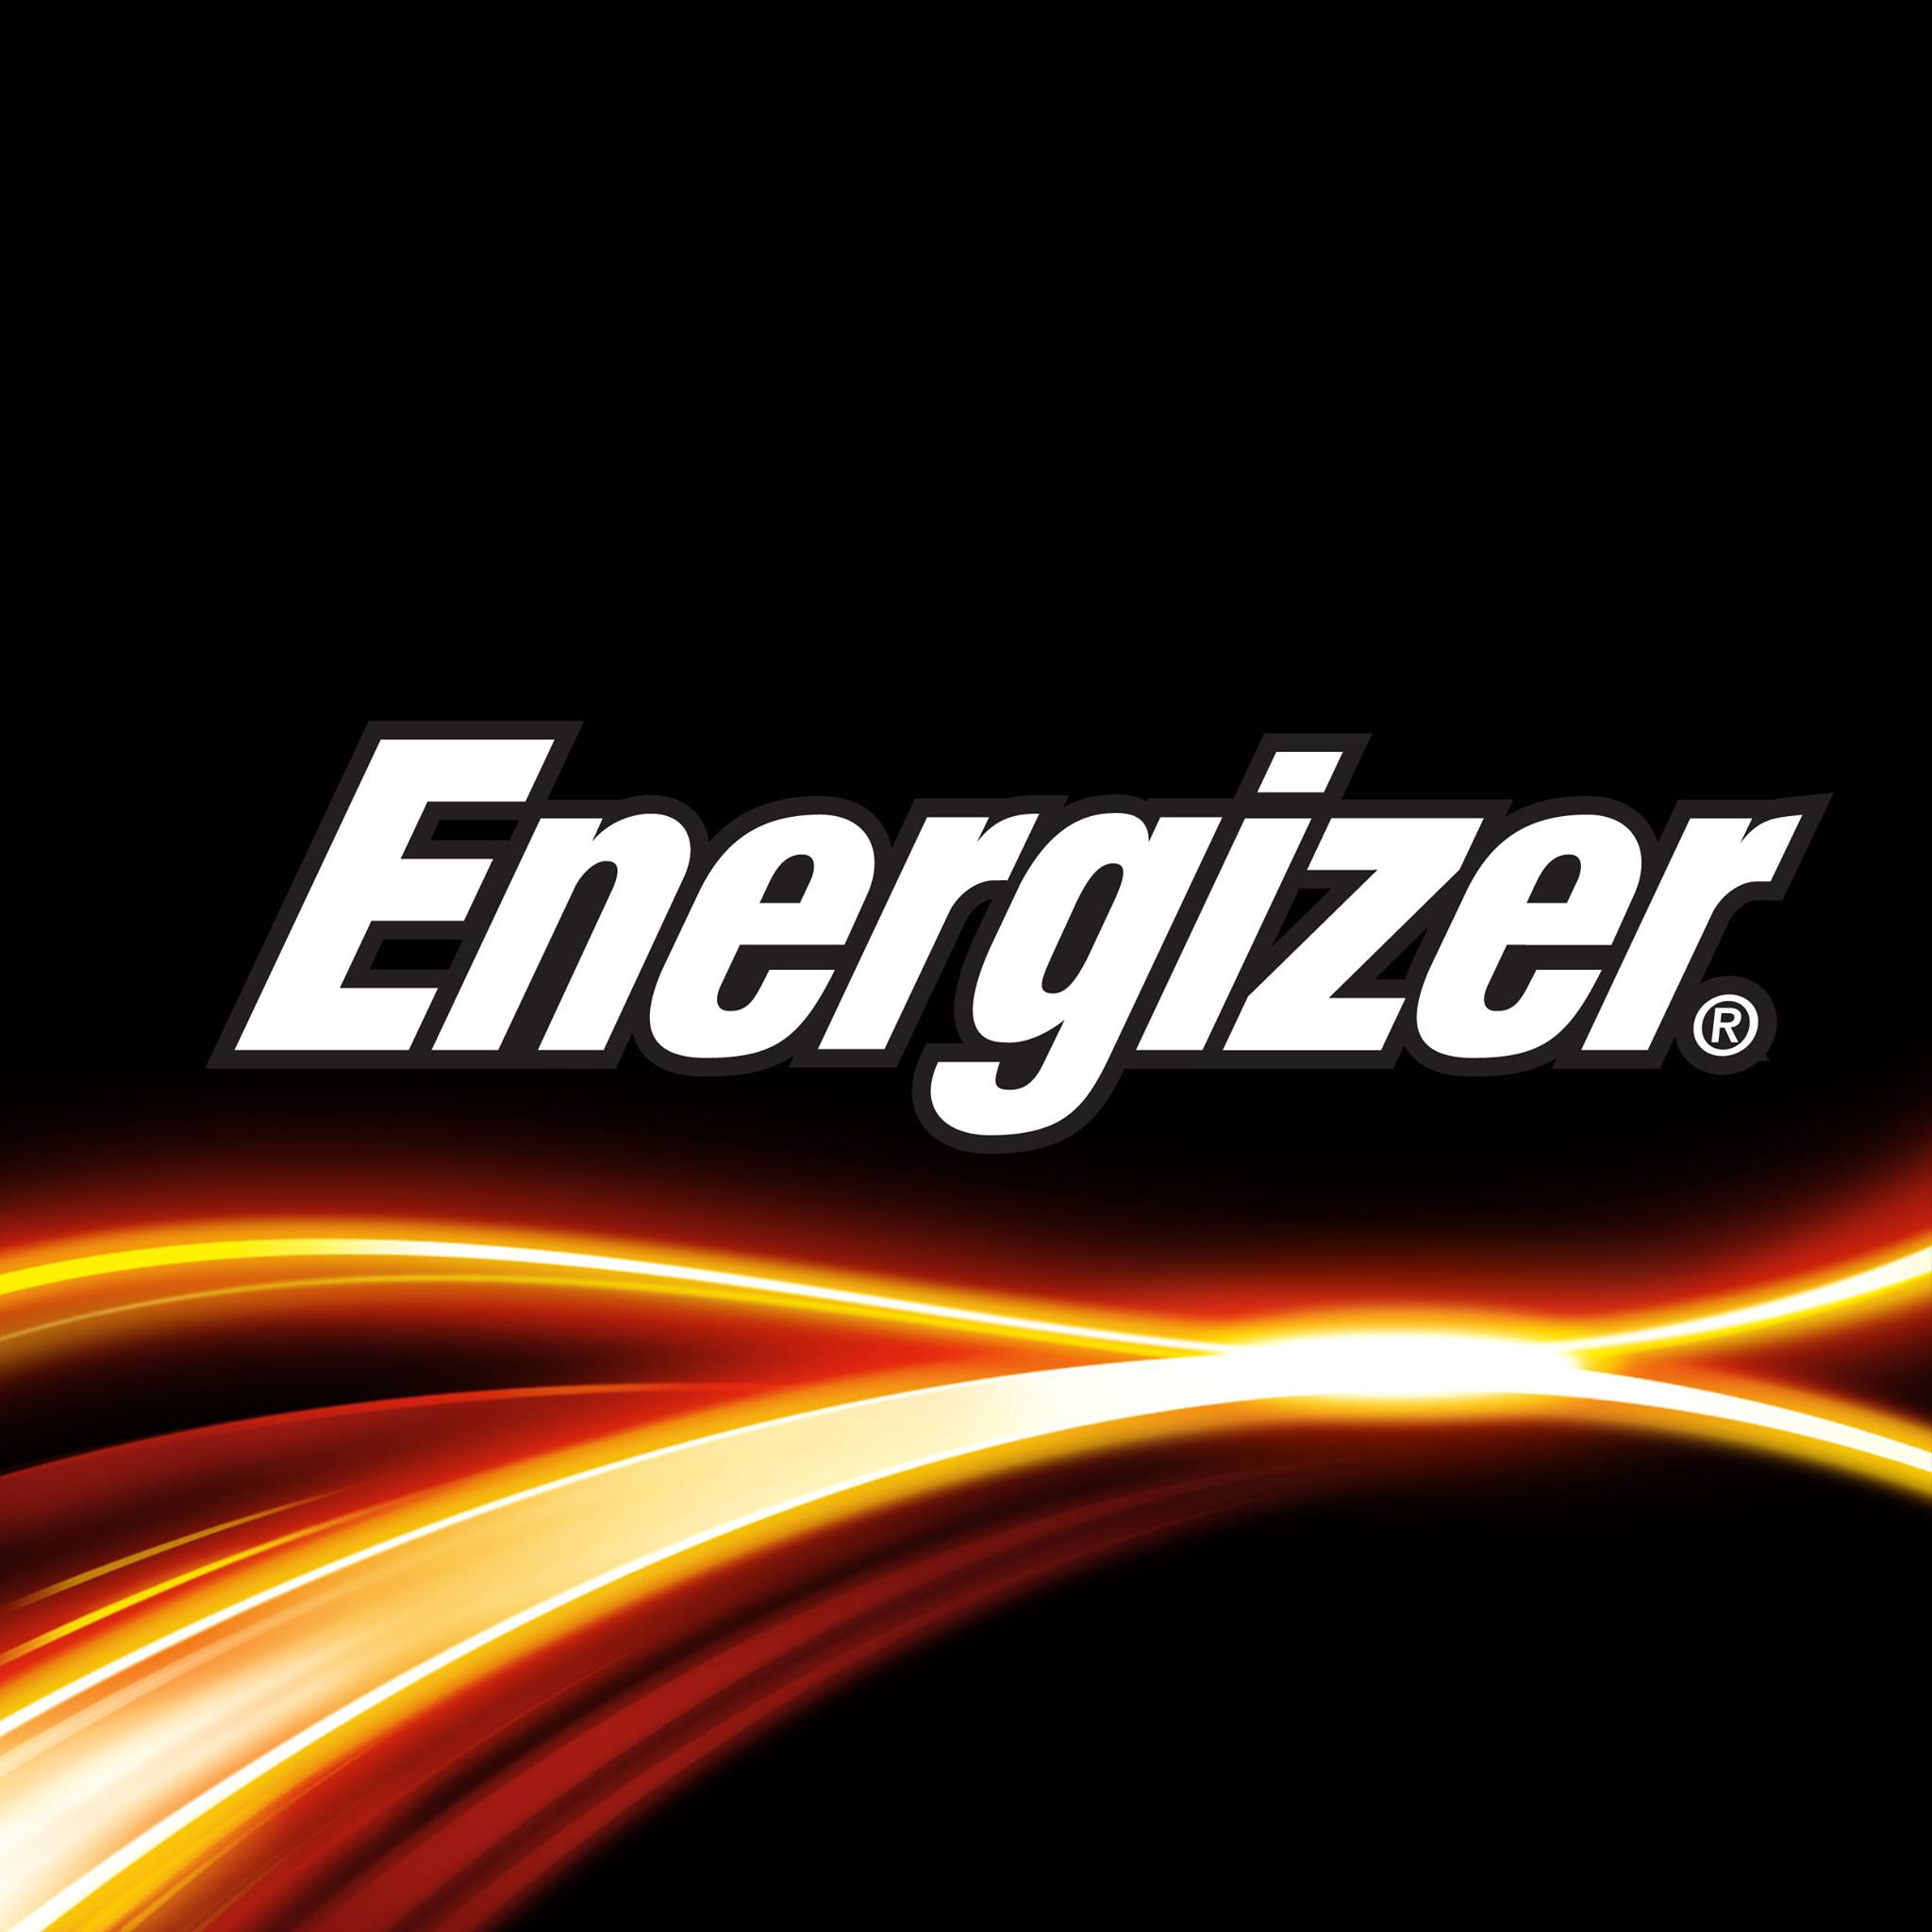 91a9404dd Energizer Holdings, Inc. announces pricing of $500 million of senior notes